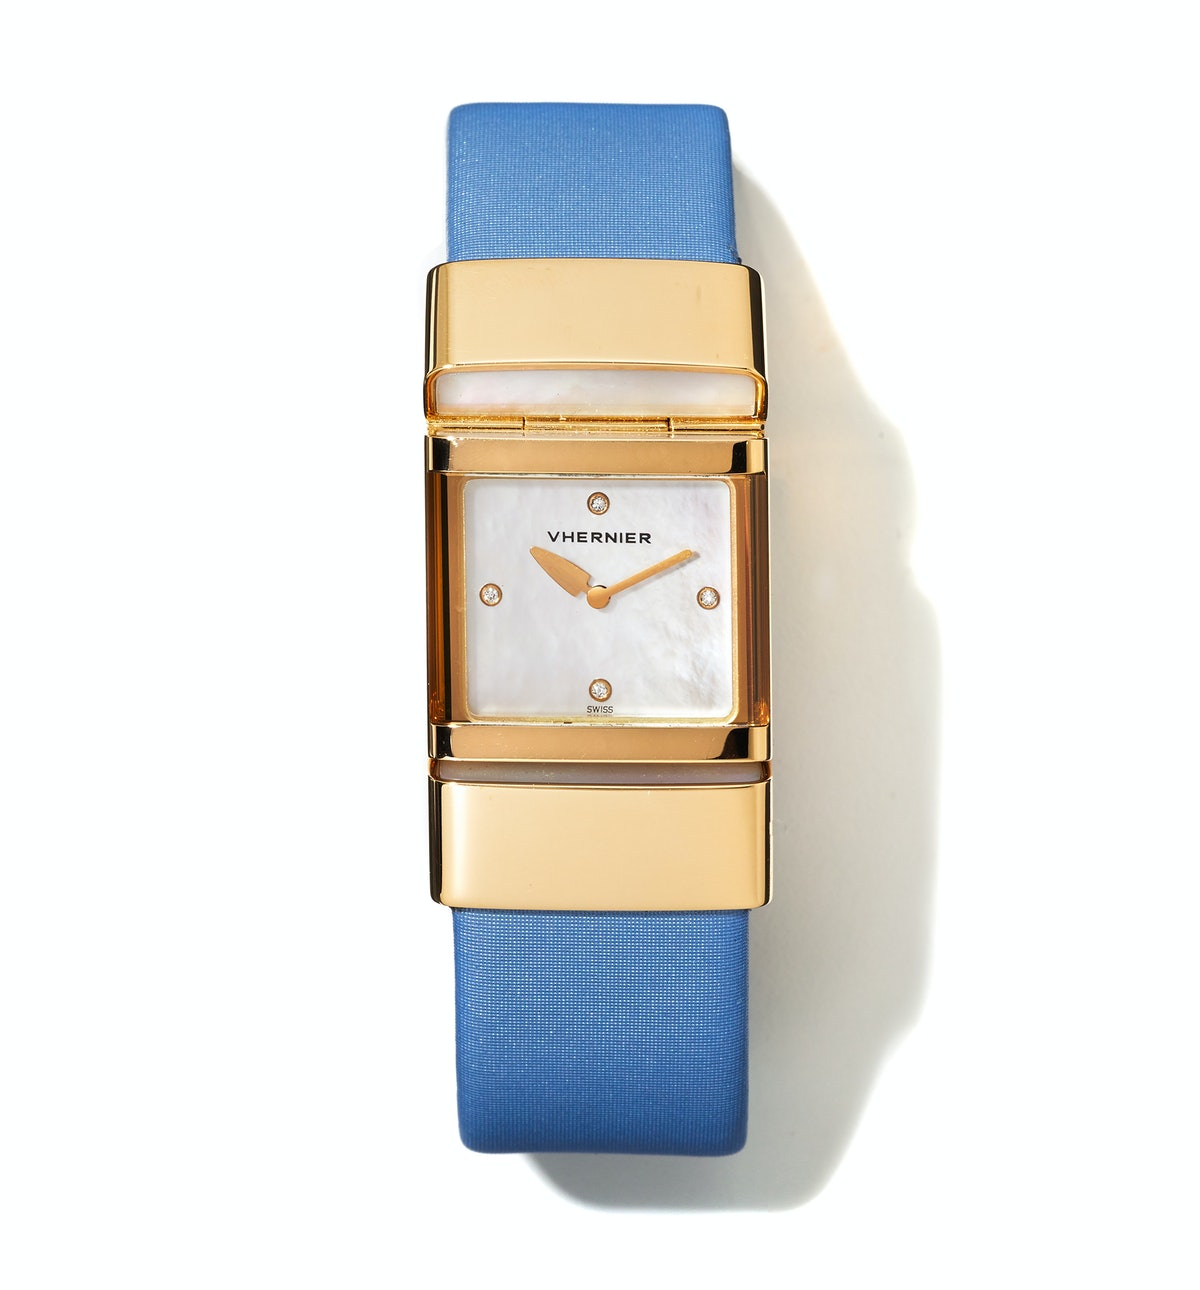 Vhernier gold, mother-of-pearl, and diamond watch